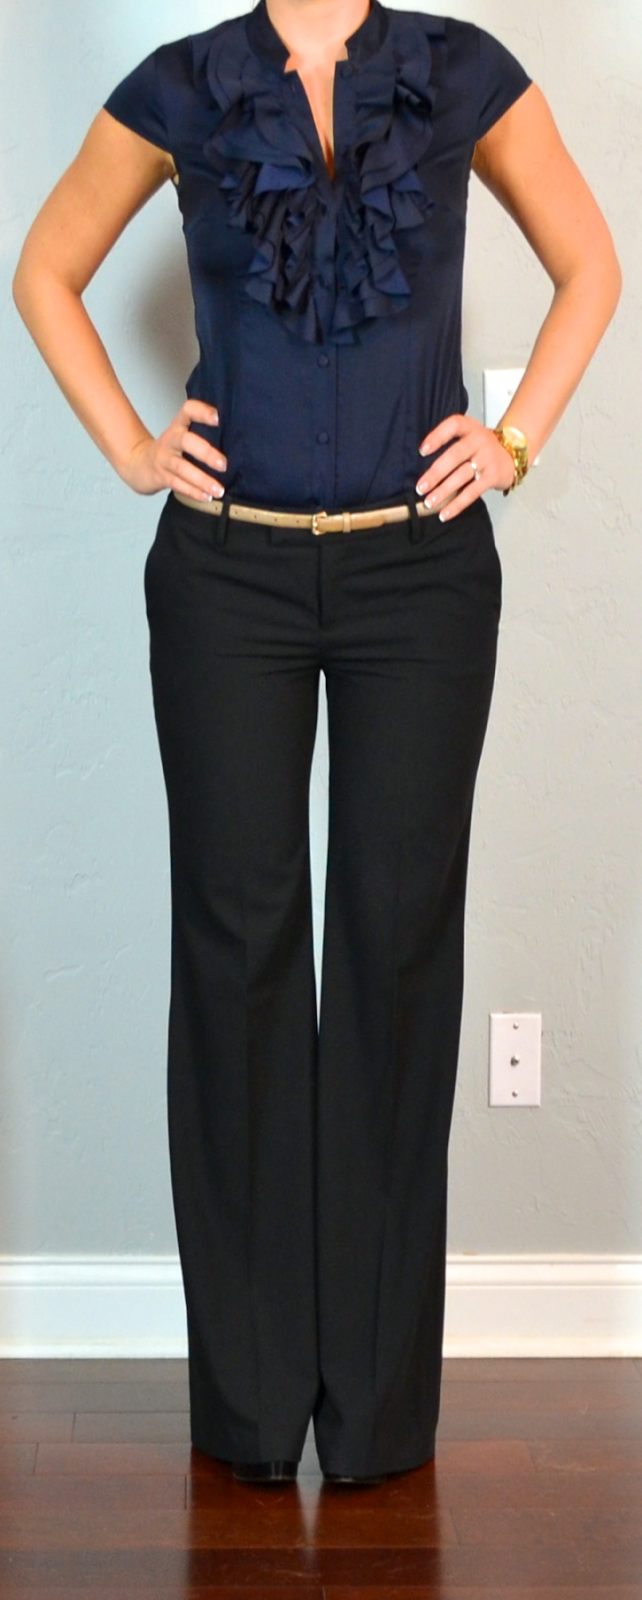 outfit post navy ruffle blouse black 'editor' pants